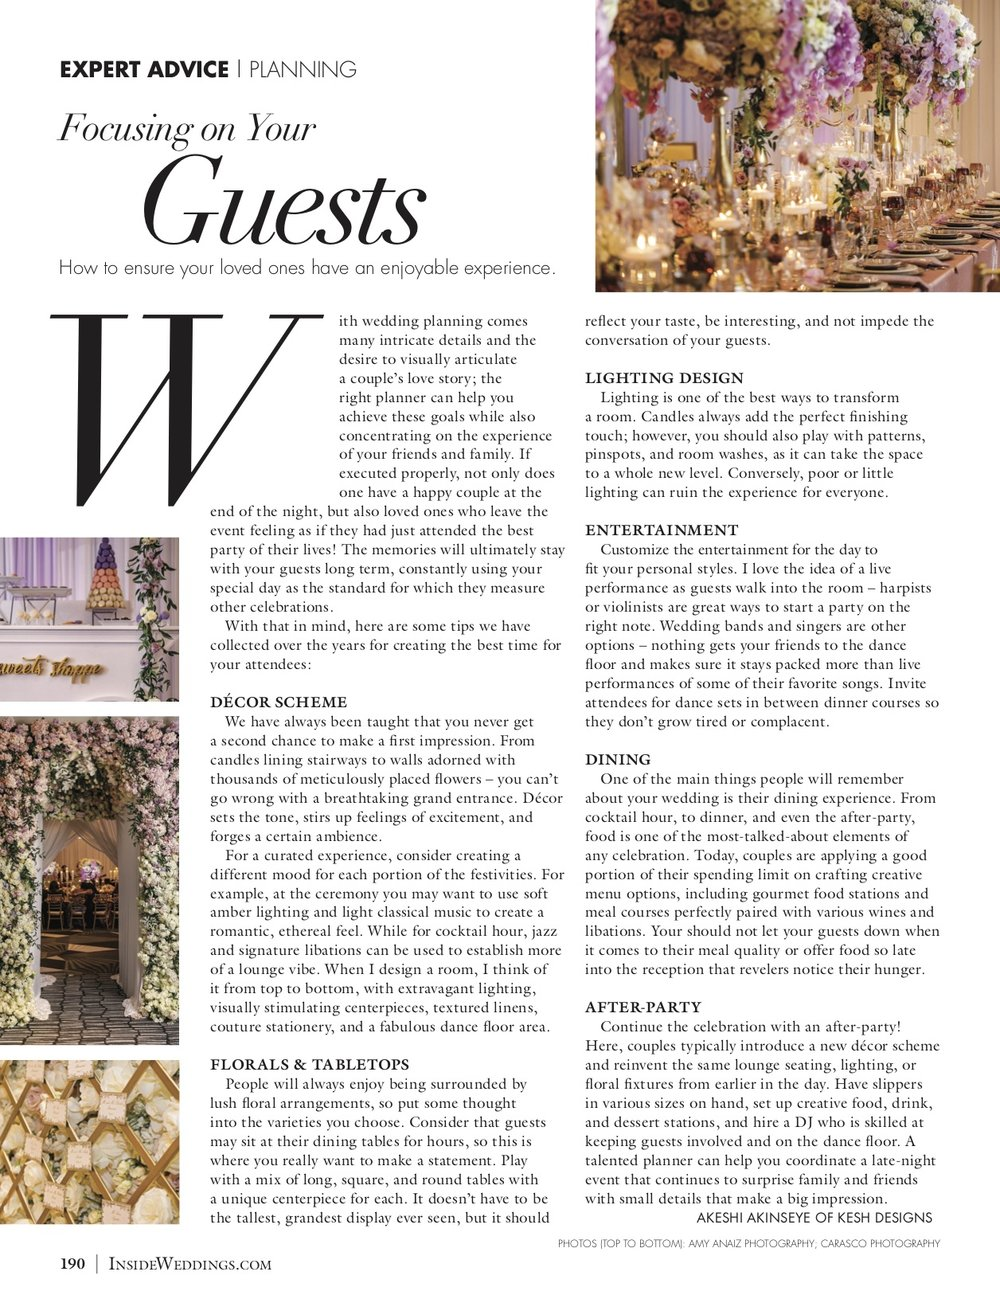 Expert-advice-Article-inside-weddings-kesh-events.jpg